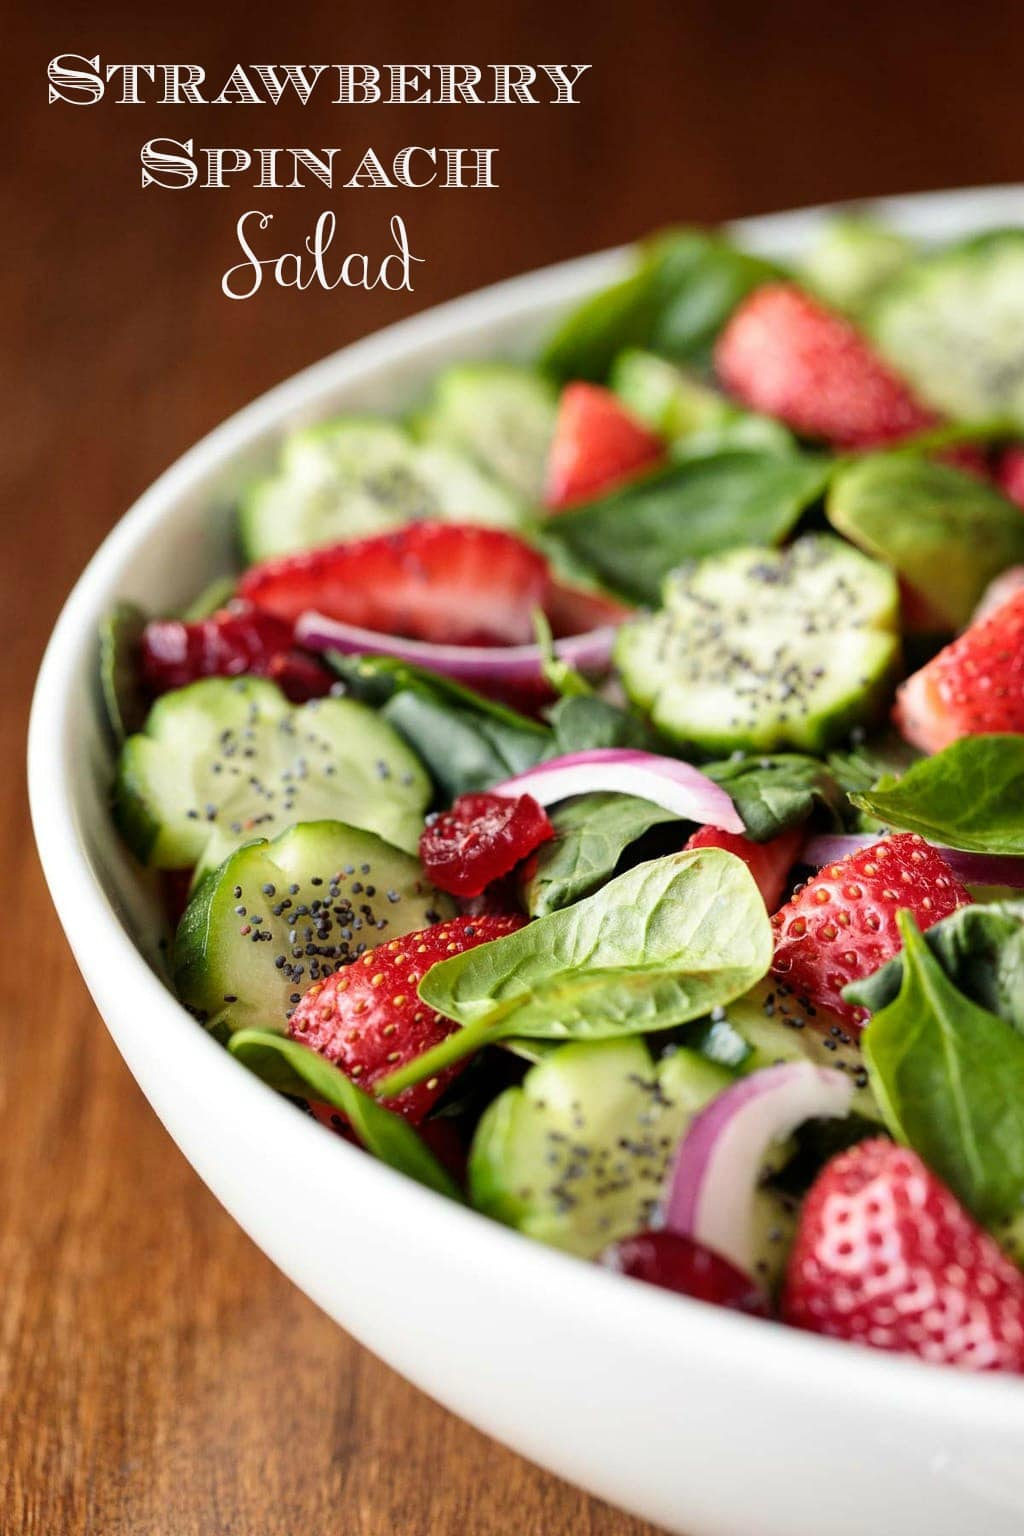 This Strawberry Spinach Salad is pretty as a picture. The Basil Dressing and Sweet, Spicy Glazed Pistachios are the crowning glory! #spinachsalad #strwberryspinachsalad #basildressing #spinach #strawberries #cucumberflowers #cucumbers #springsalad